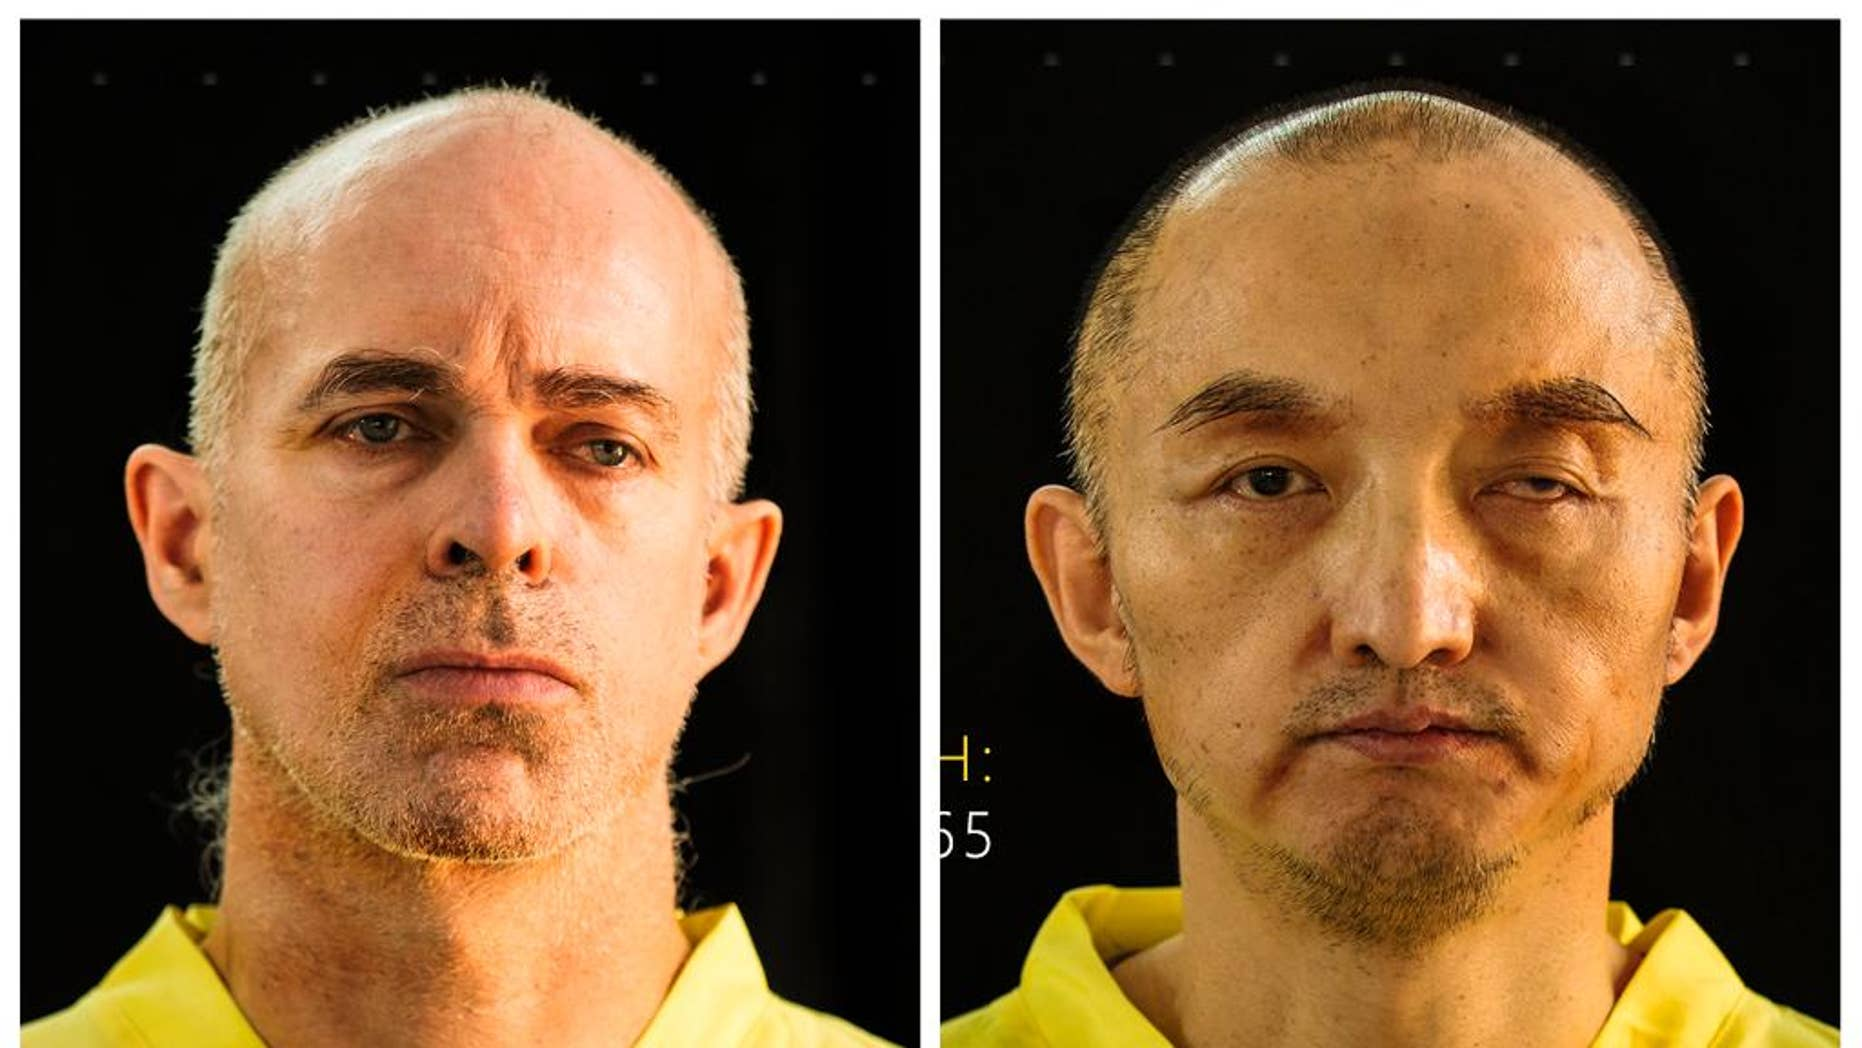 This combination of undated photos taken from the Islamic State group's online magazine Dabiq purports to show Ole Johan Grimsgaard-Ofstad, 48, from Oslo, Norway, left, and Fan Jinghui, 50, from Beijing, China. The extremist group claimed on Wednesday, Sept. 9, 2015, to be holding the men hostage and demanded ransom for their release. (Dabiq via AP)